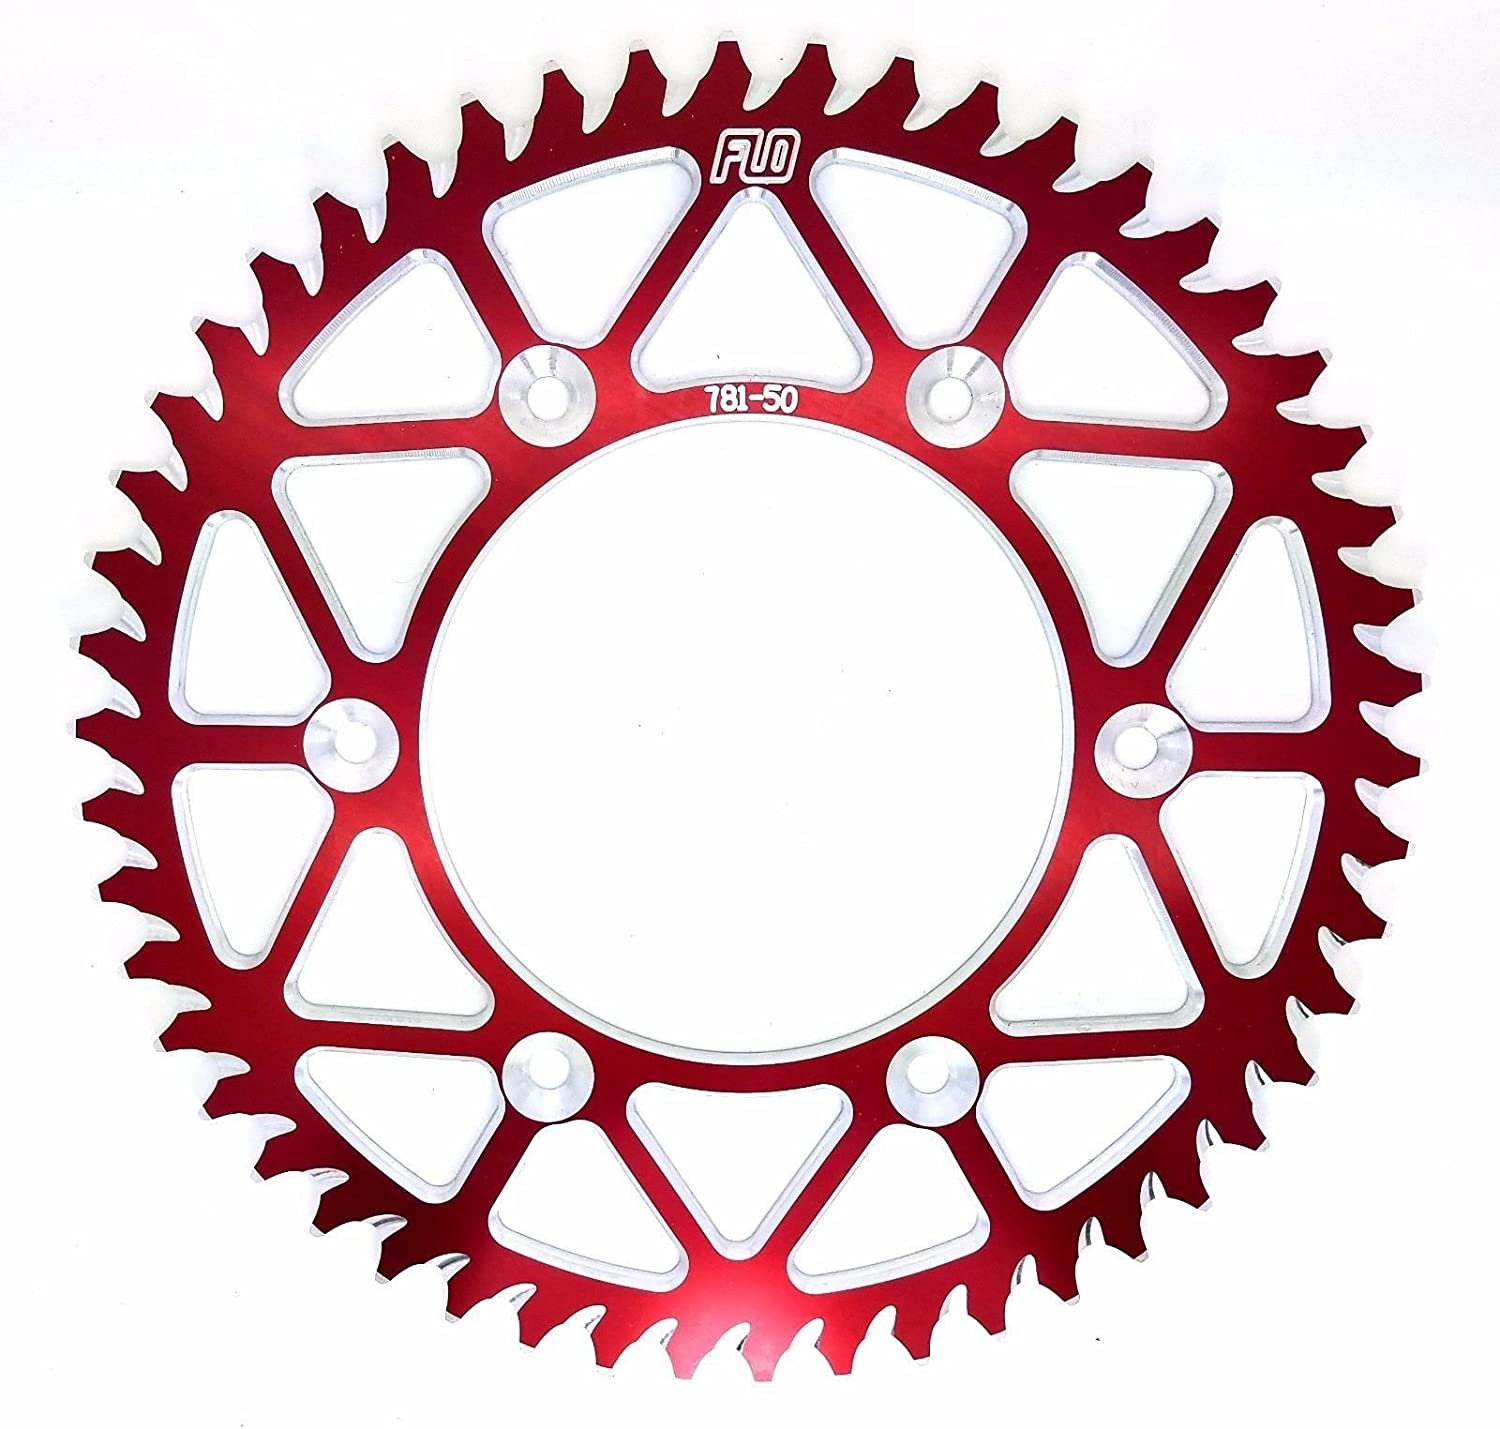 50 FLO MOTORSPORTS O-Ring Chain Combo Kit CR125 // CRF250 FRONT SPROCKET 13T // REAR SPROCKET 48 51 TOOTH 51T, RED 49